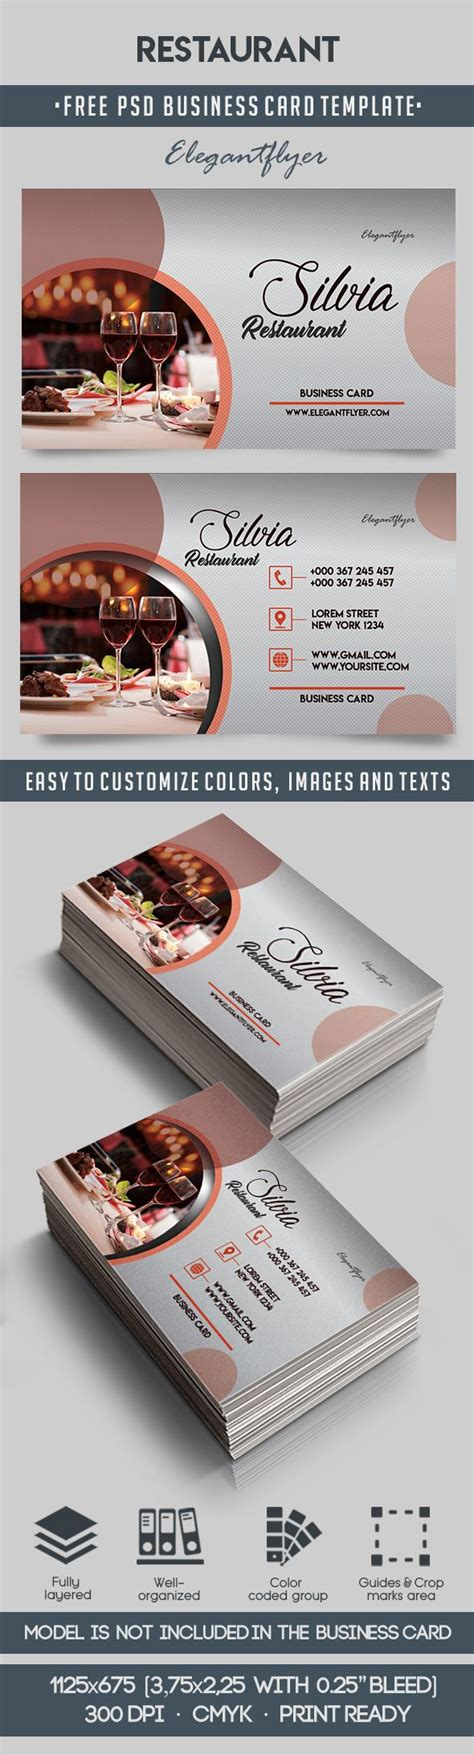 restaurant business cards templates free restaurant free business card templates psd by